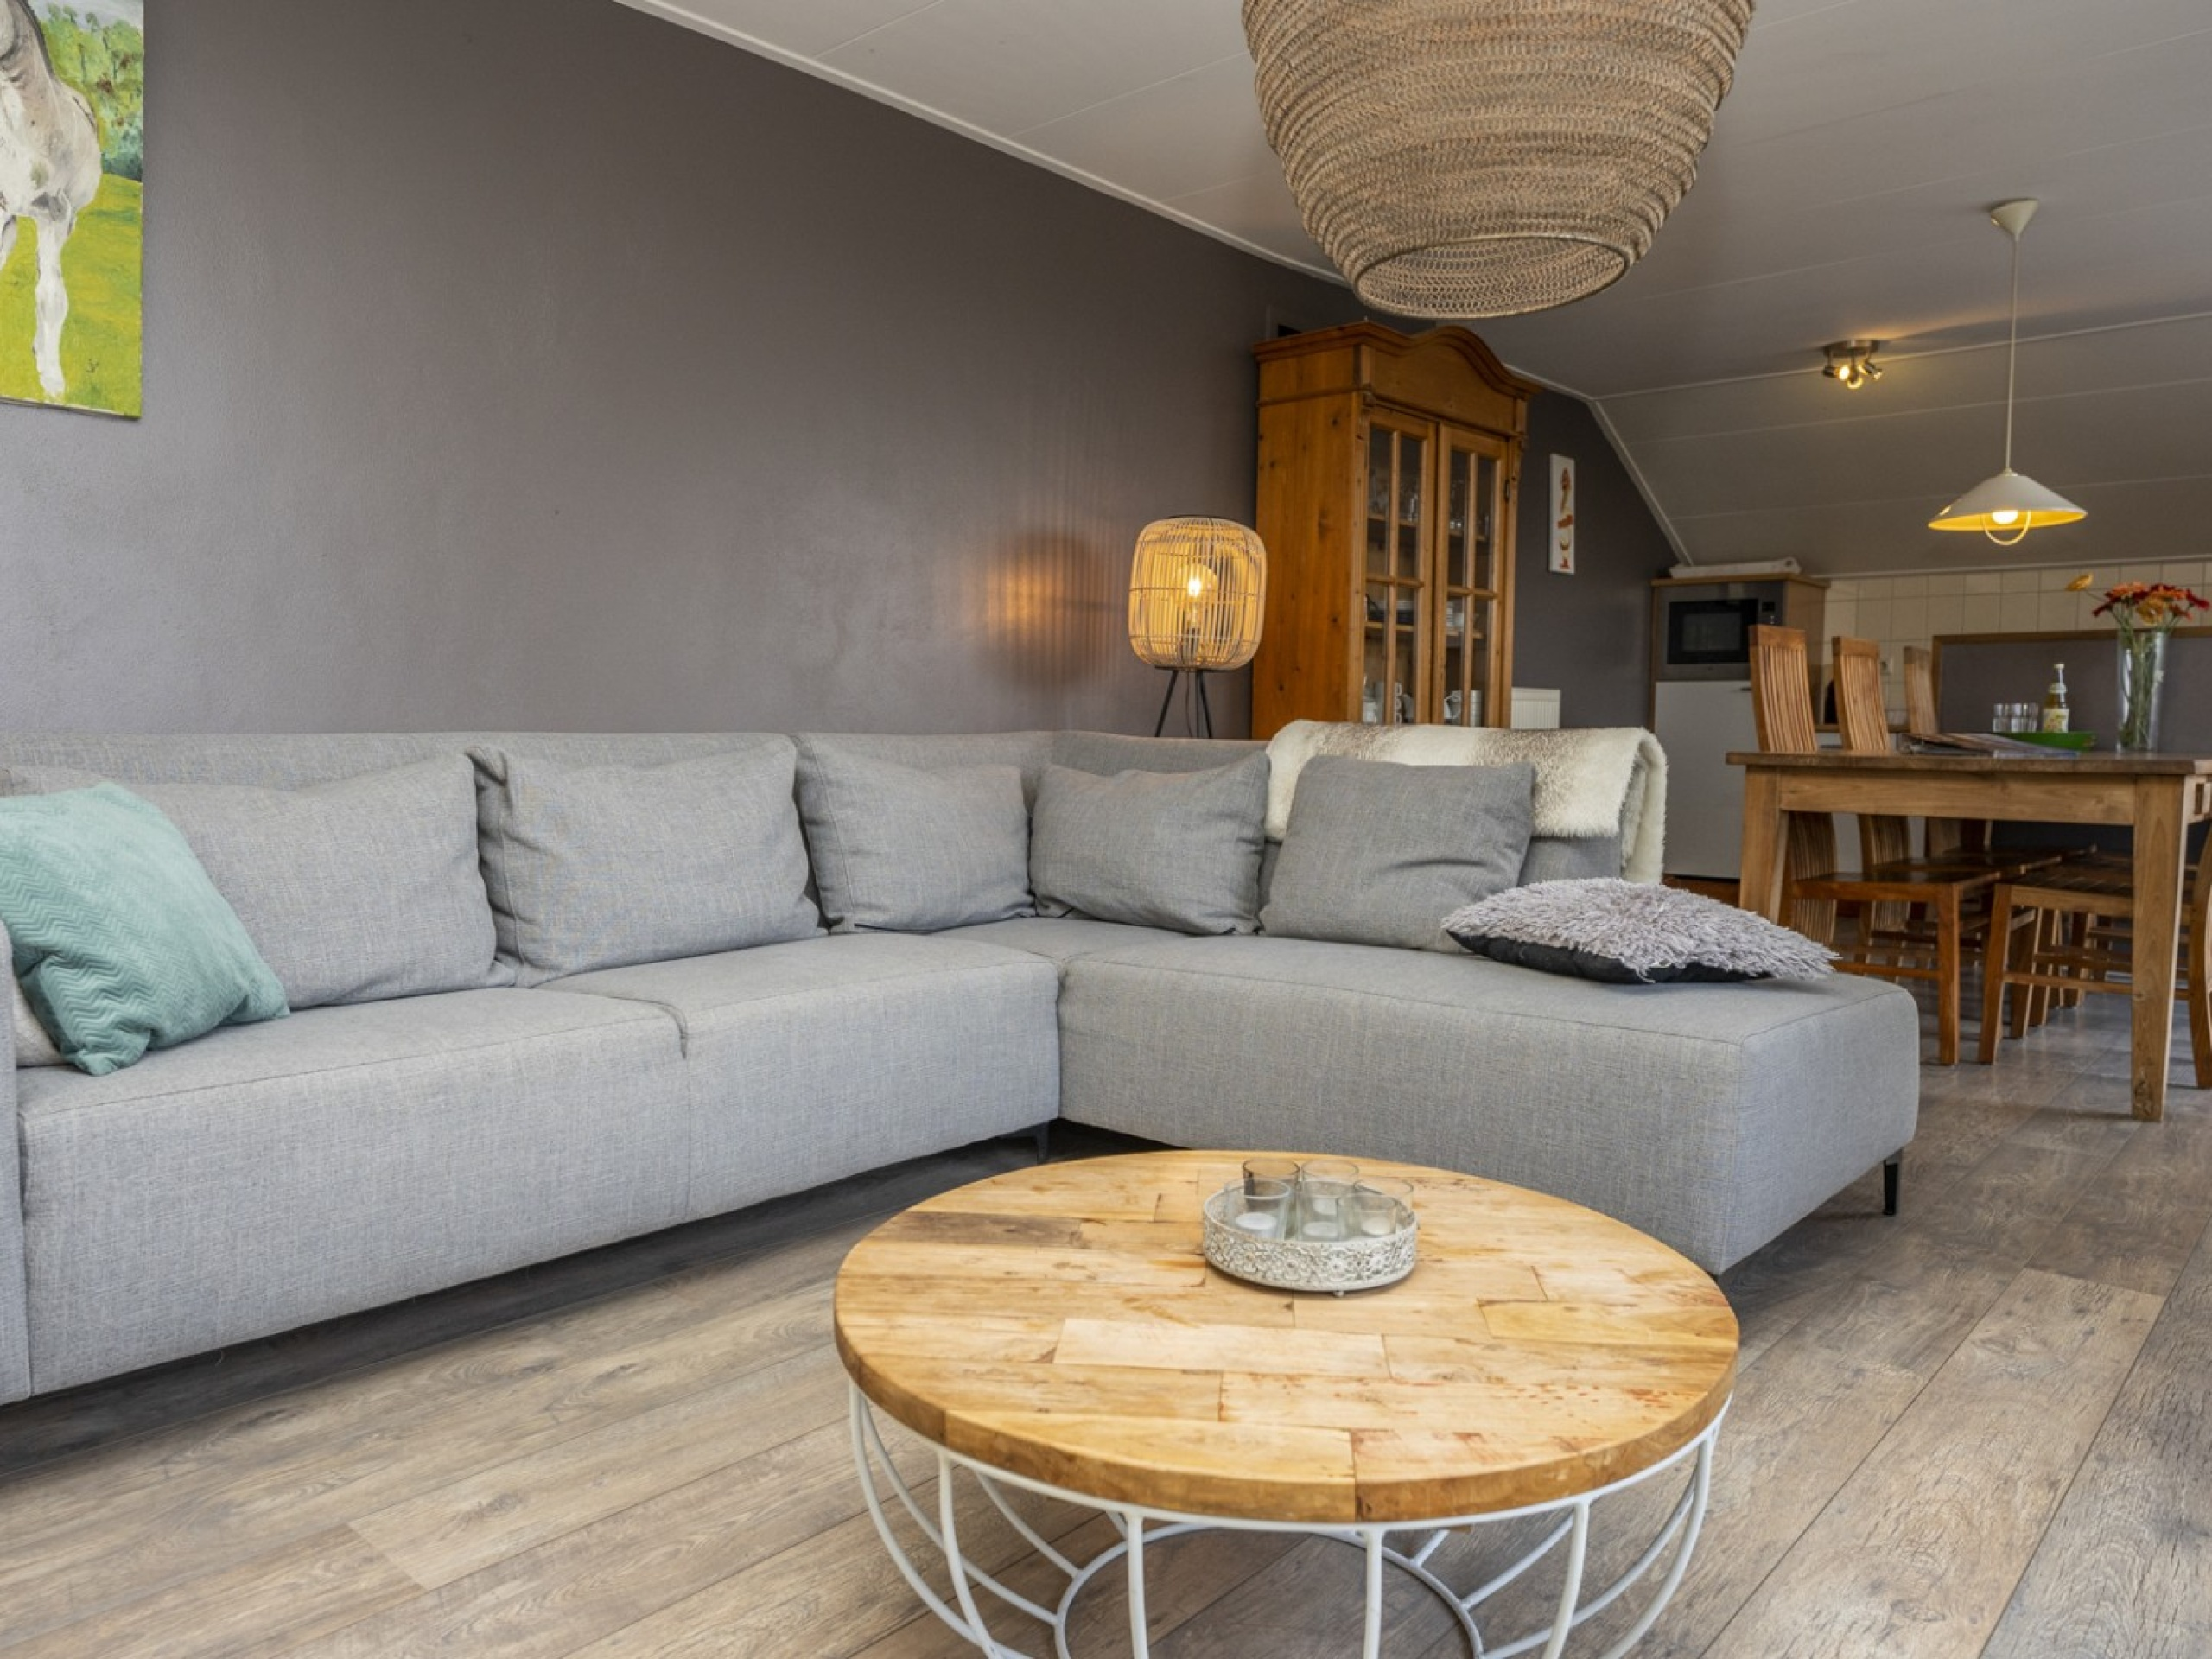 Enjoy the countryside at this cosy sunny apartment near Den Hoorn